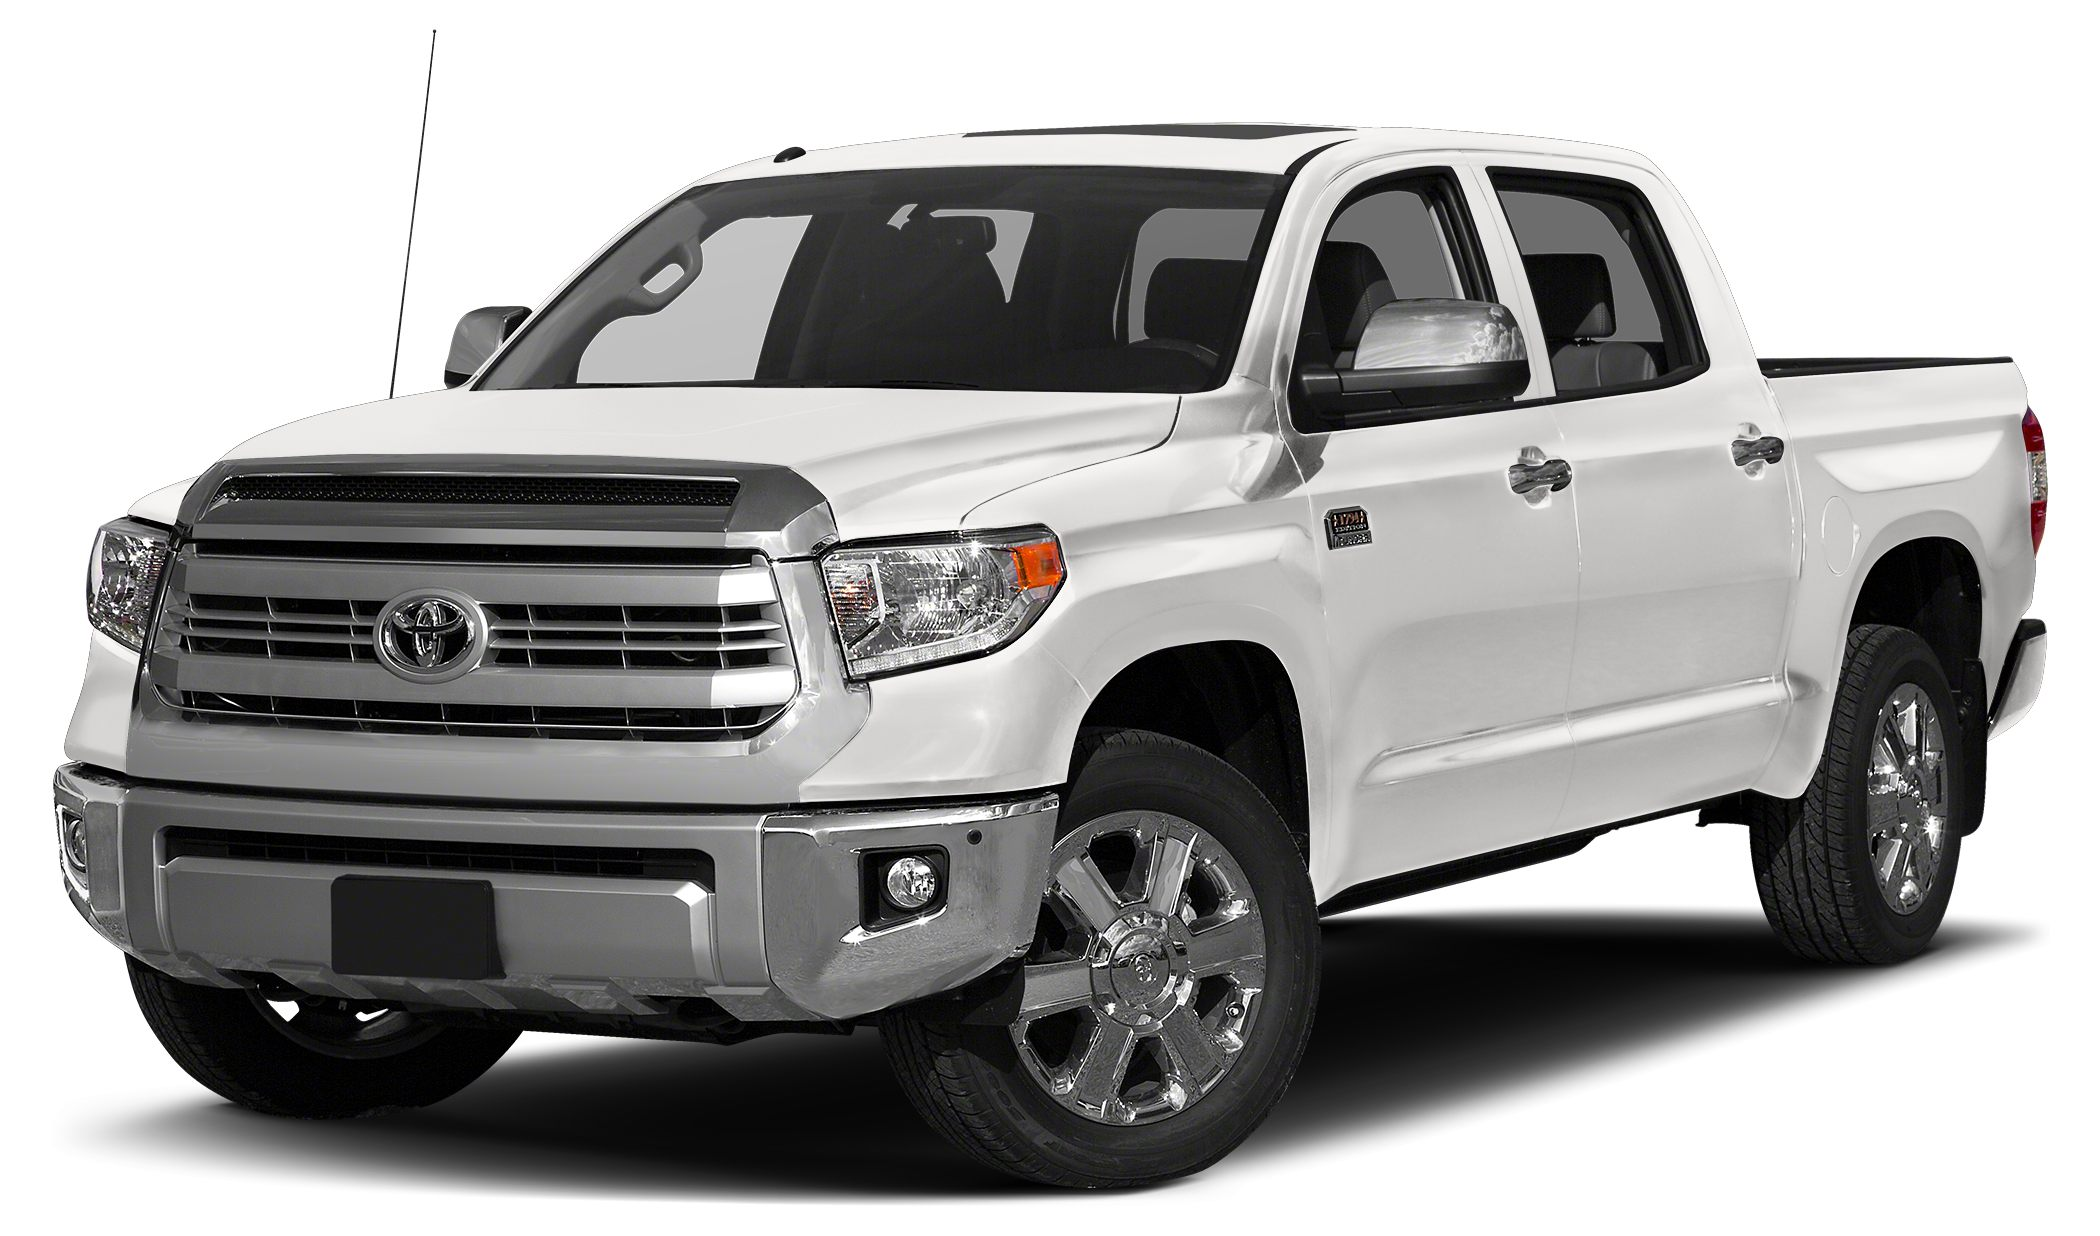 2016 Toyota Tundra 1794 Westboro Toyota is proud to present HASSLE FREE BUYING EXPERIENCE with upf